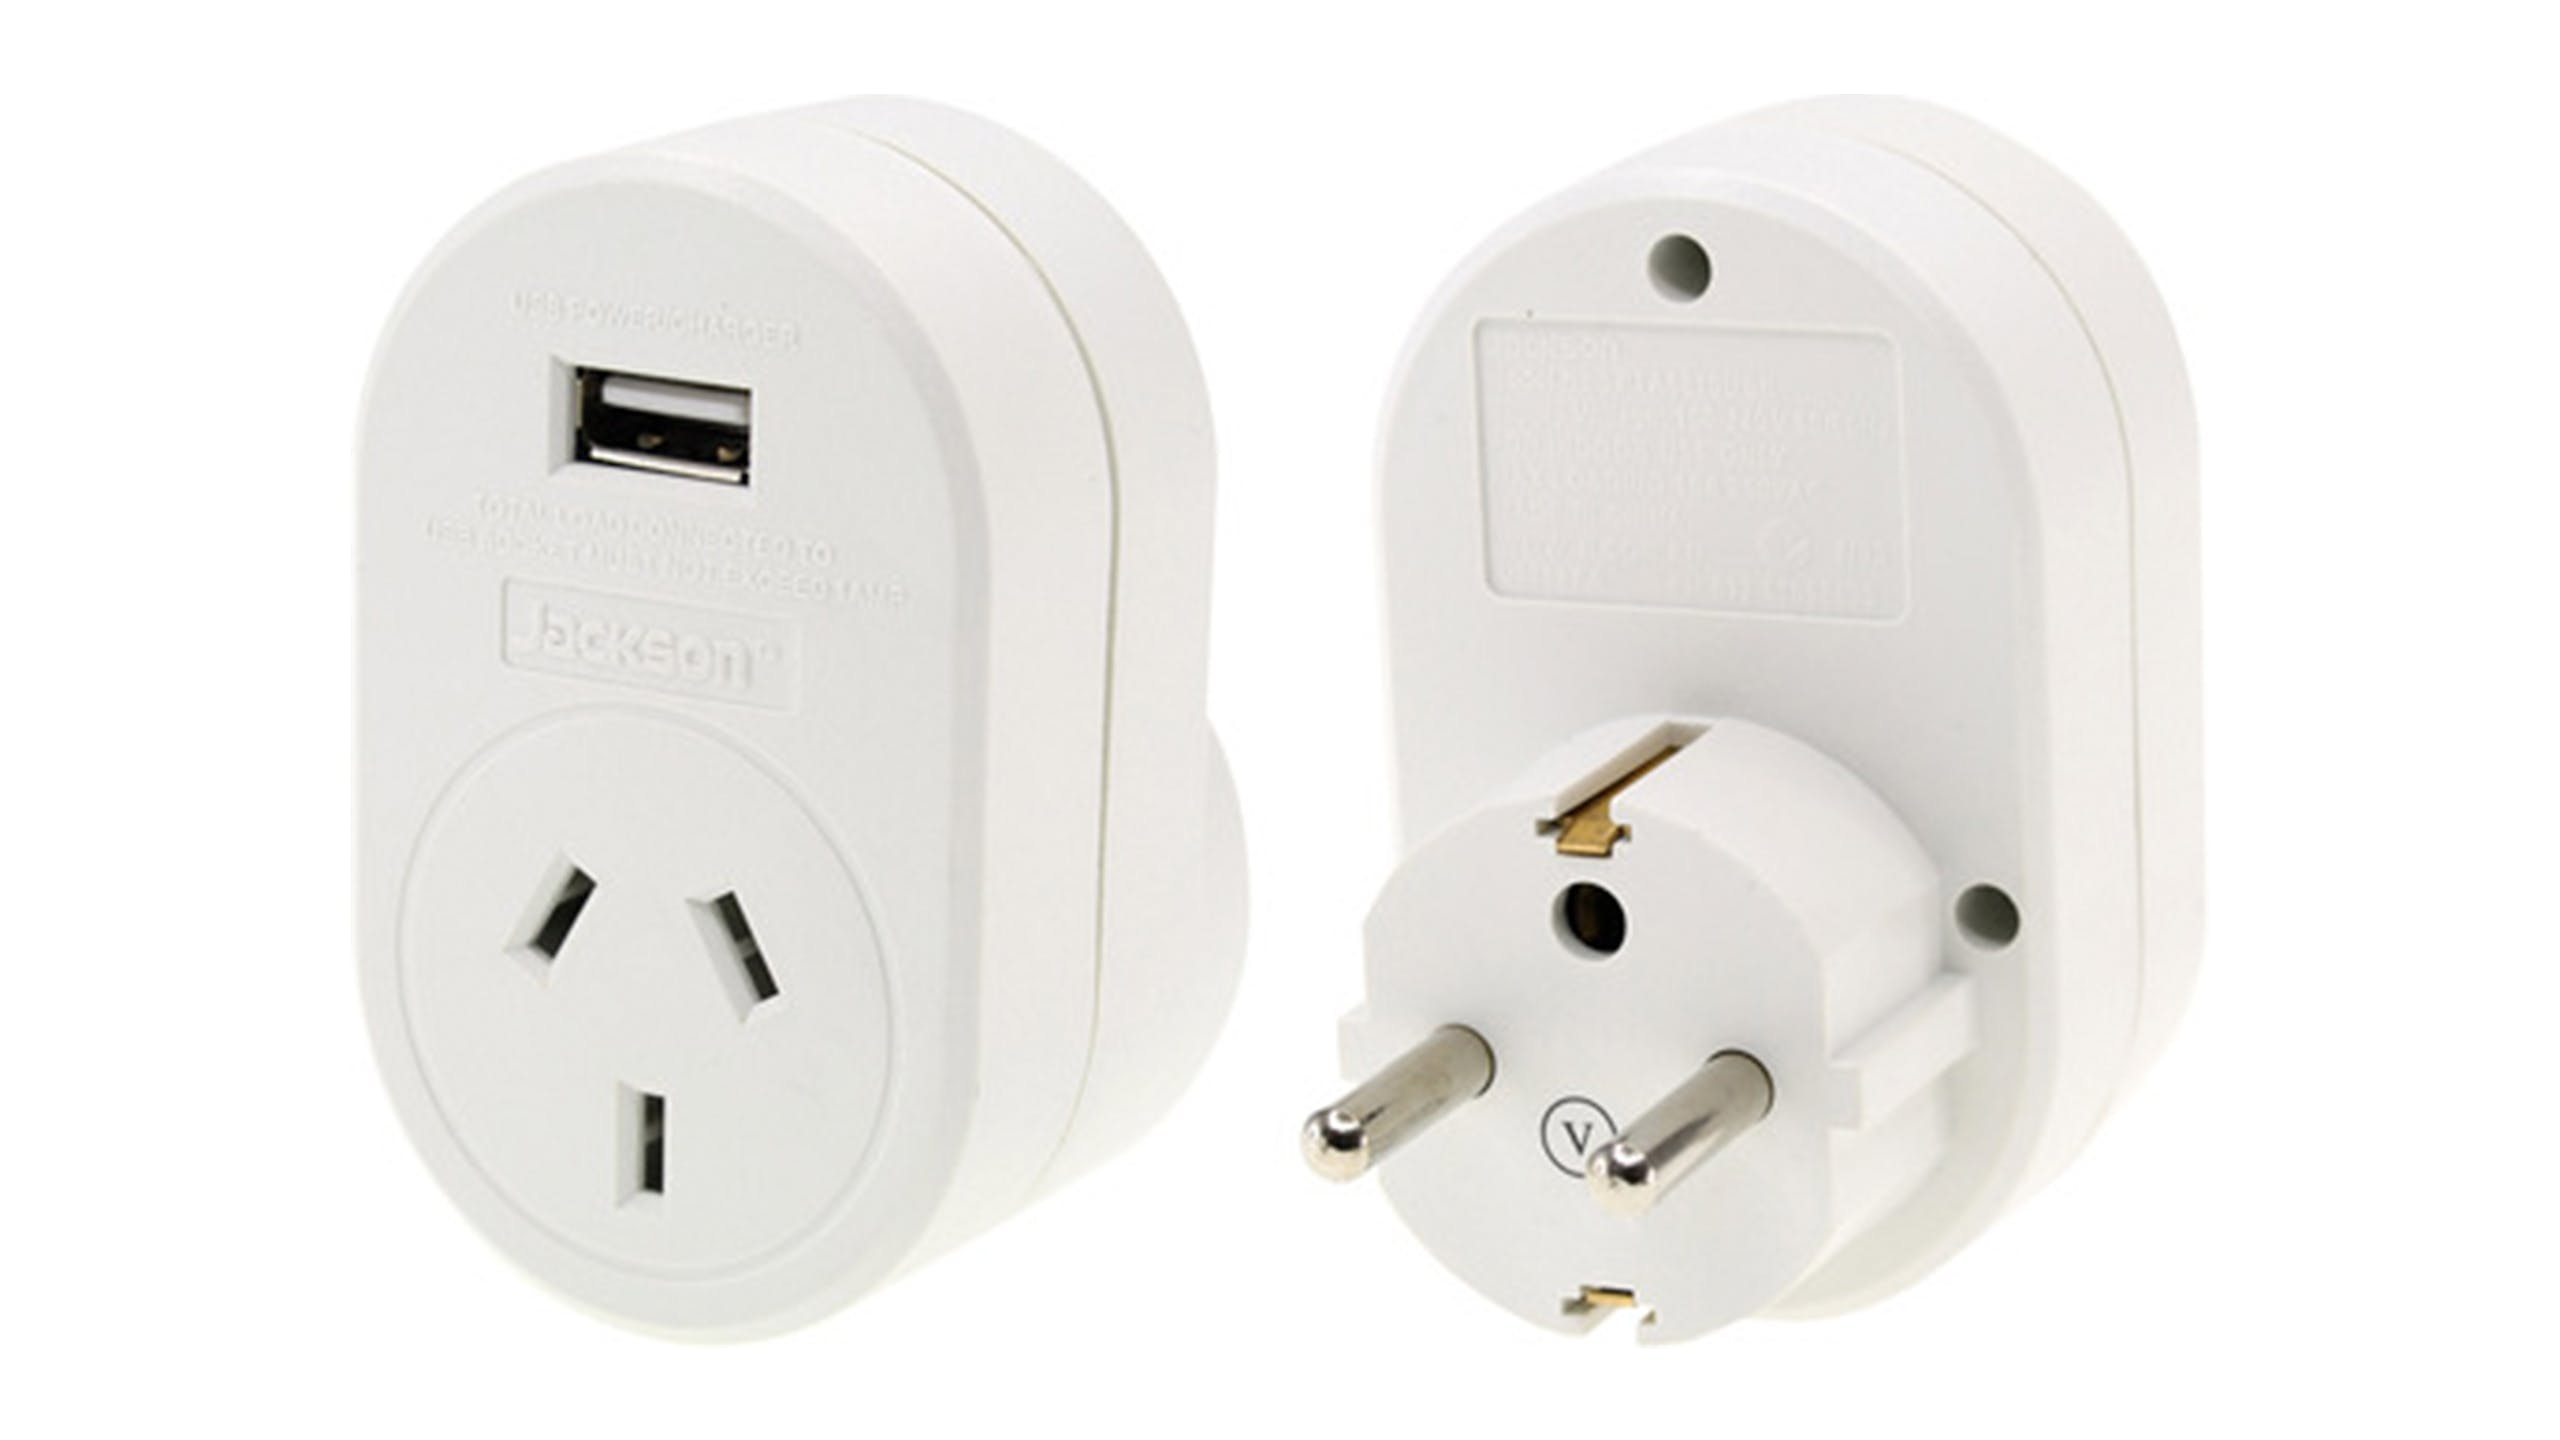 Jackson Outbound Travel Adapter with USB Charging Outlet For Europe